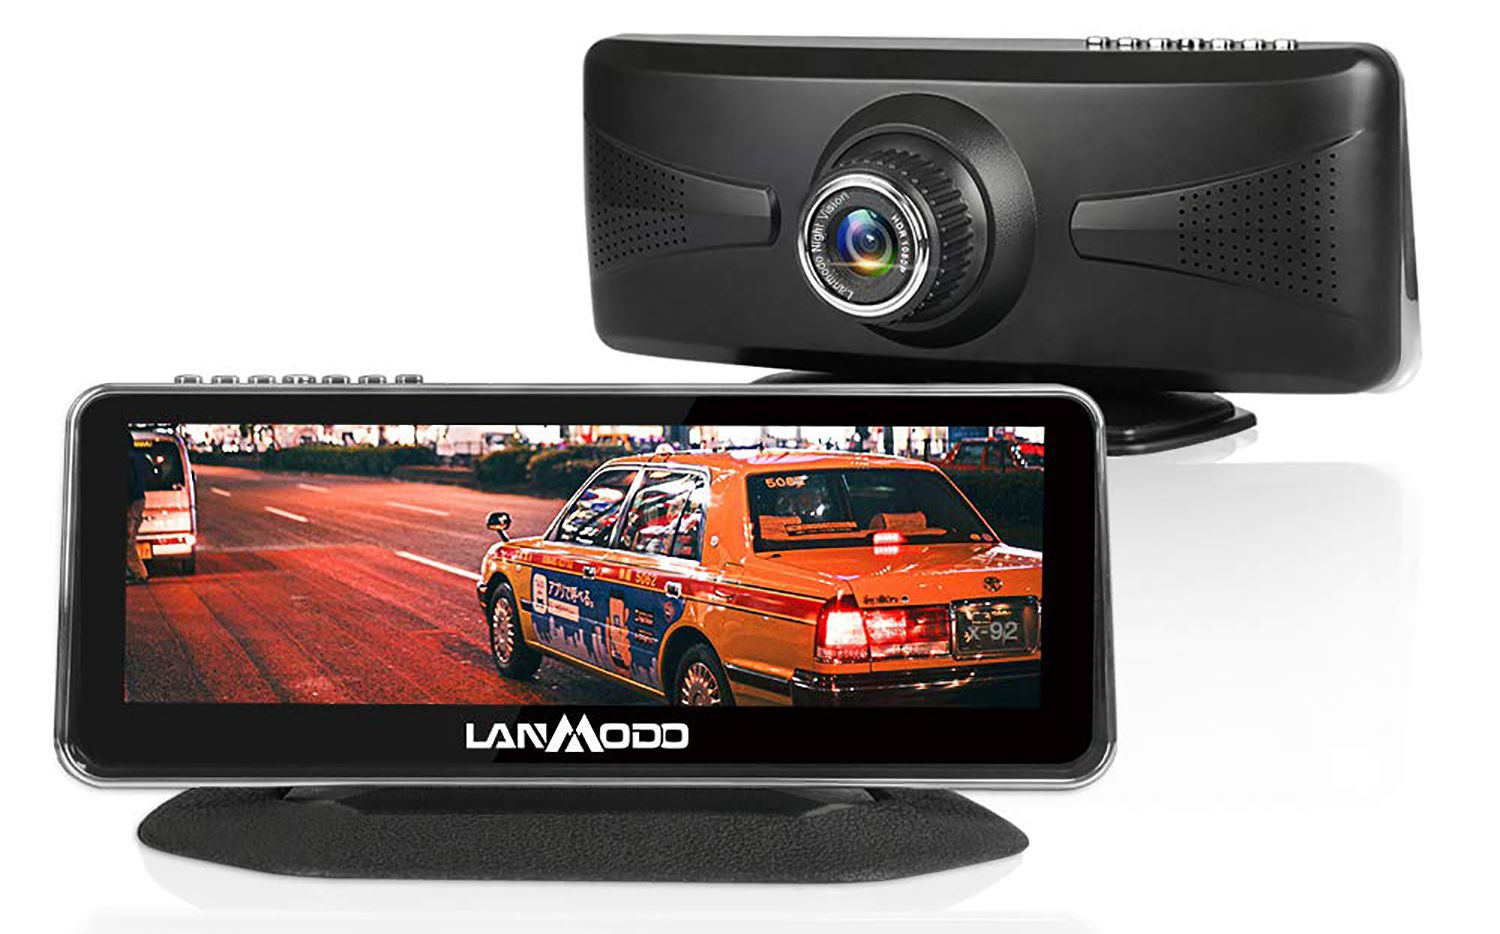 Lanmodo Vast Automotive Night Vision Camera